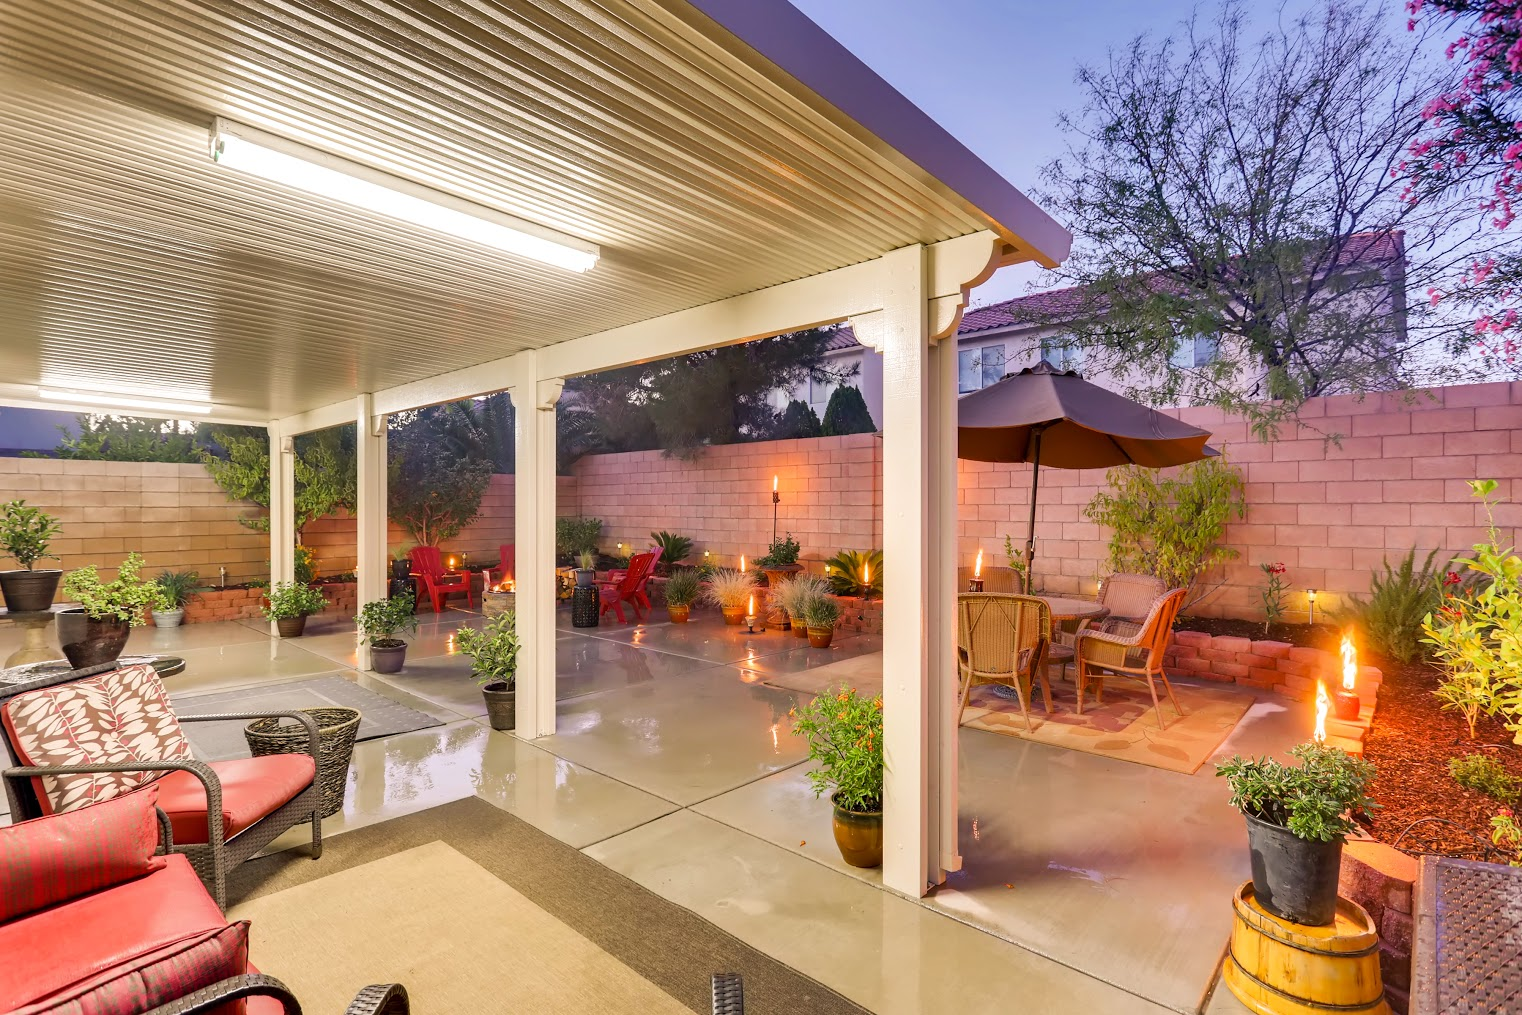 Richard Husel and Summerlin Outdoor Staging: Service Beyond Compare